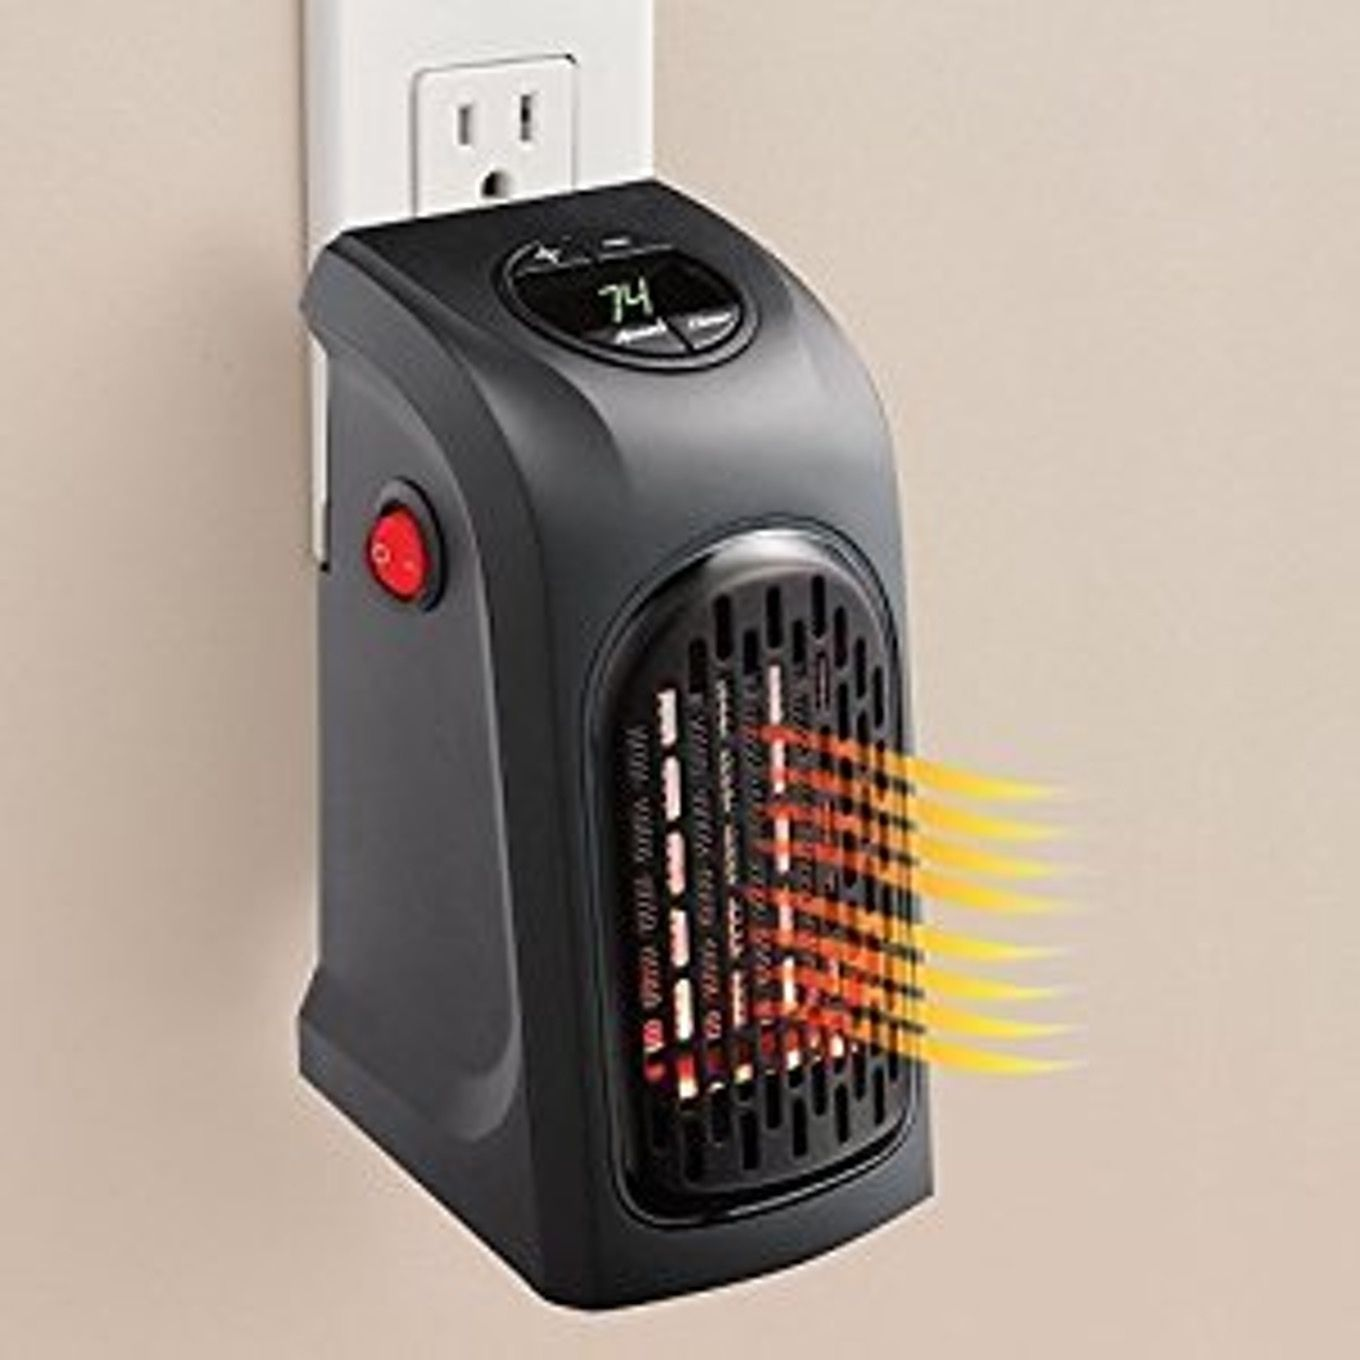 55+ Space Heater For Baby Room   Ideas For Decorating A Bedroom Check More  At